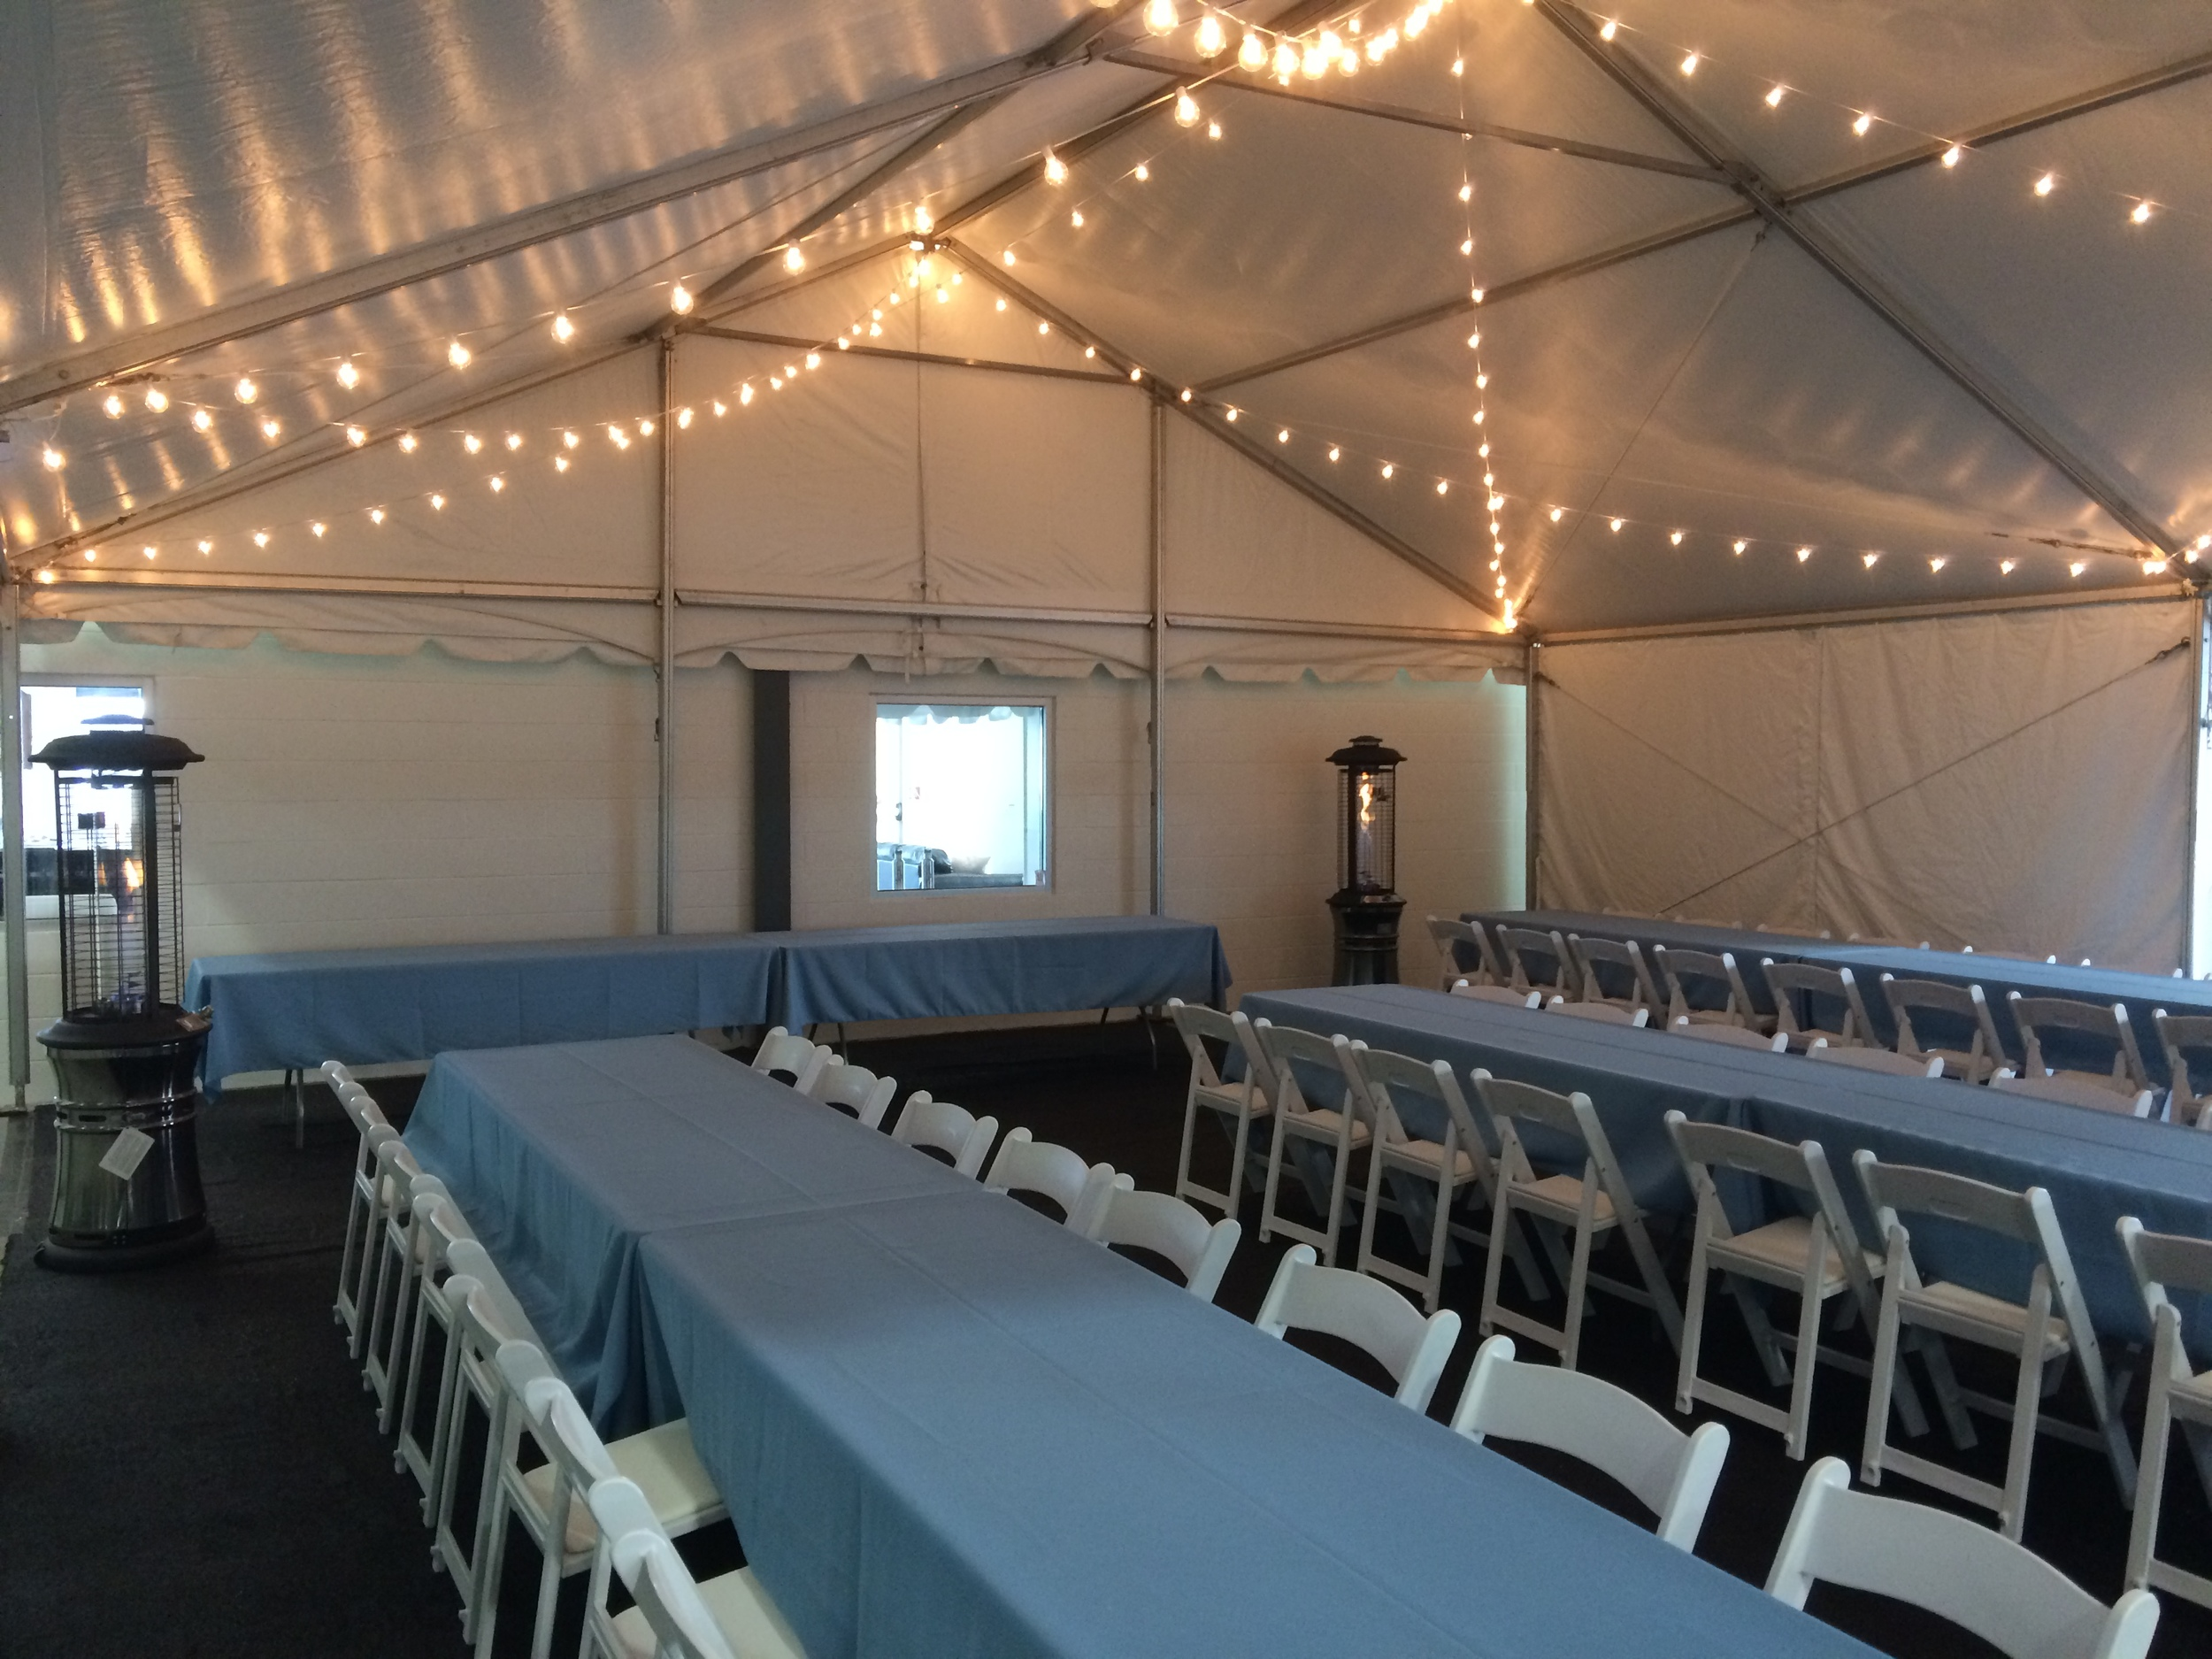 White padded chairs and 8' banquet tables